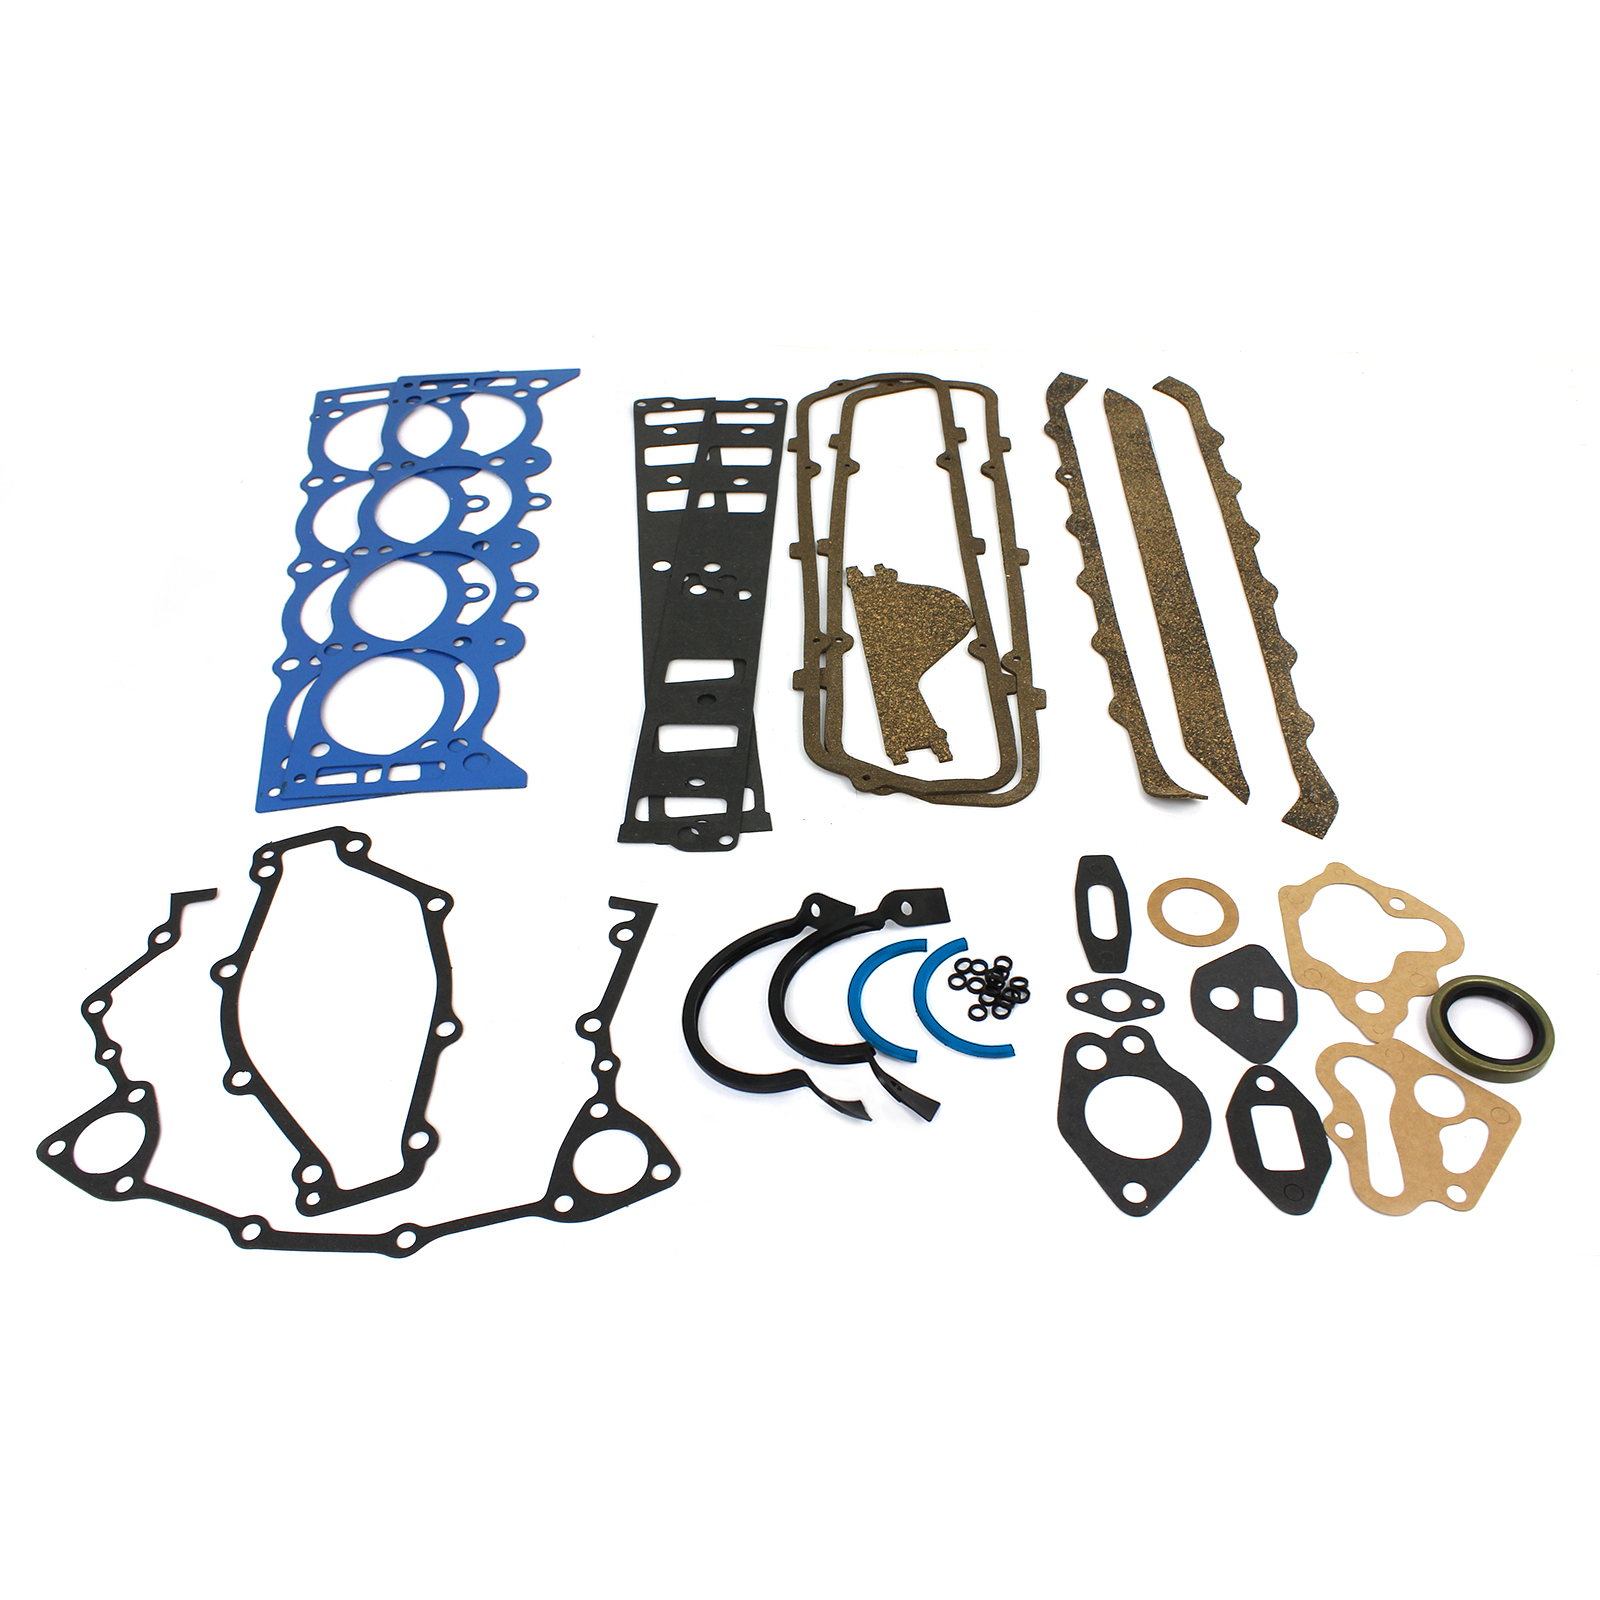 Holden-253-308-Full-Gasket-Set-Neo-Rms